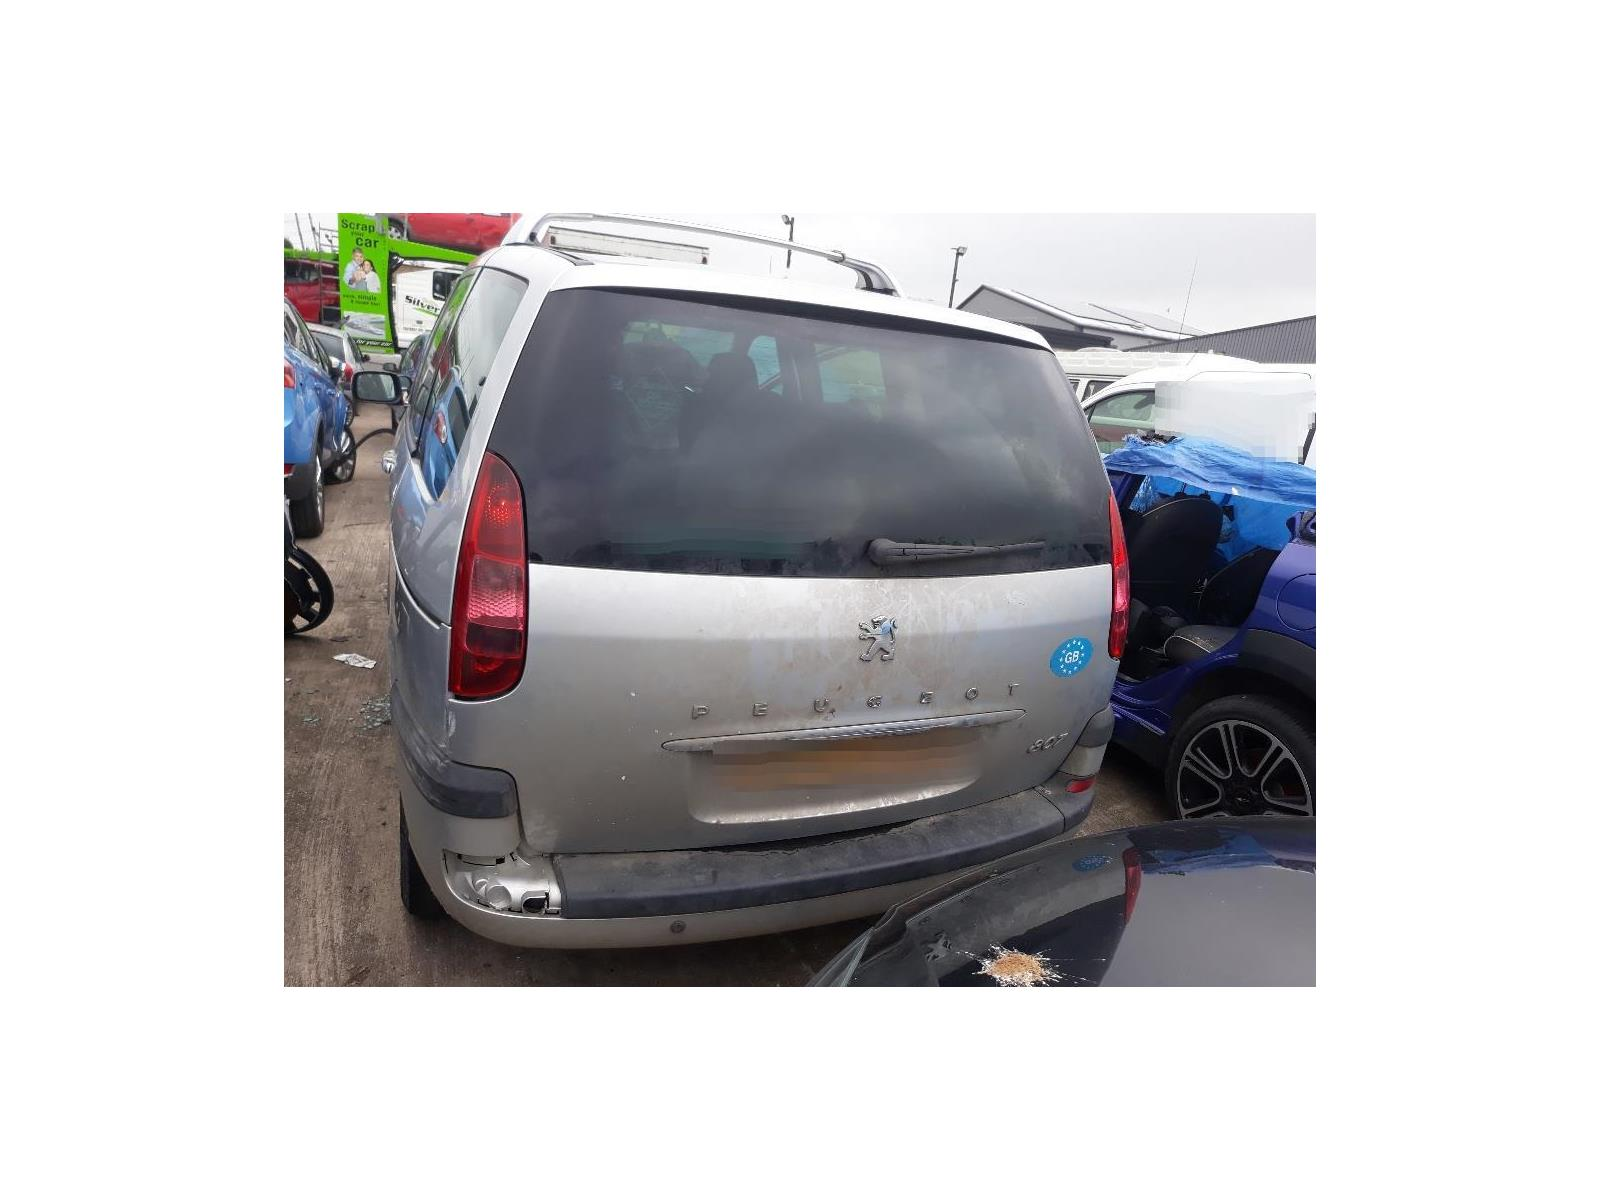 Peugeot 807 2002 To 2010 GLX HDi M.P.V. / scrap / salvage car for sale /  auction | Silverlake Autoparts